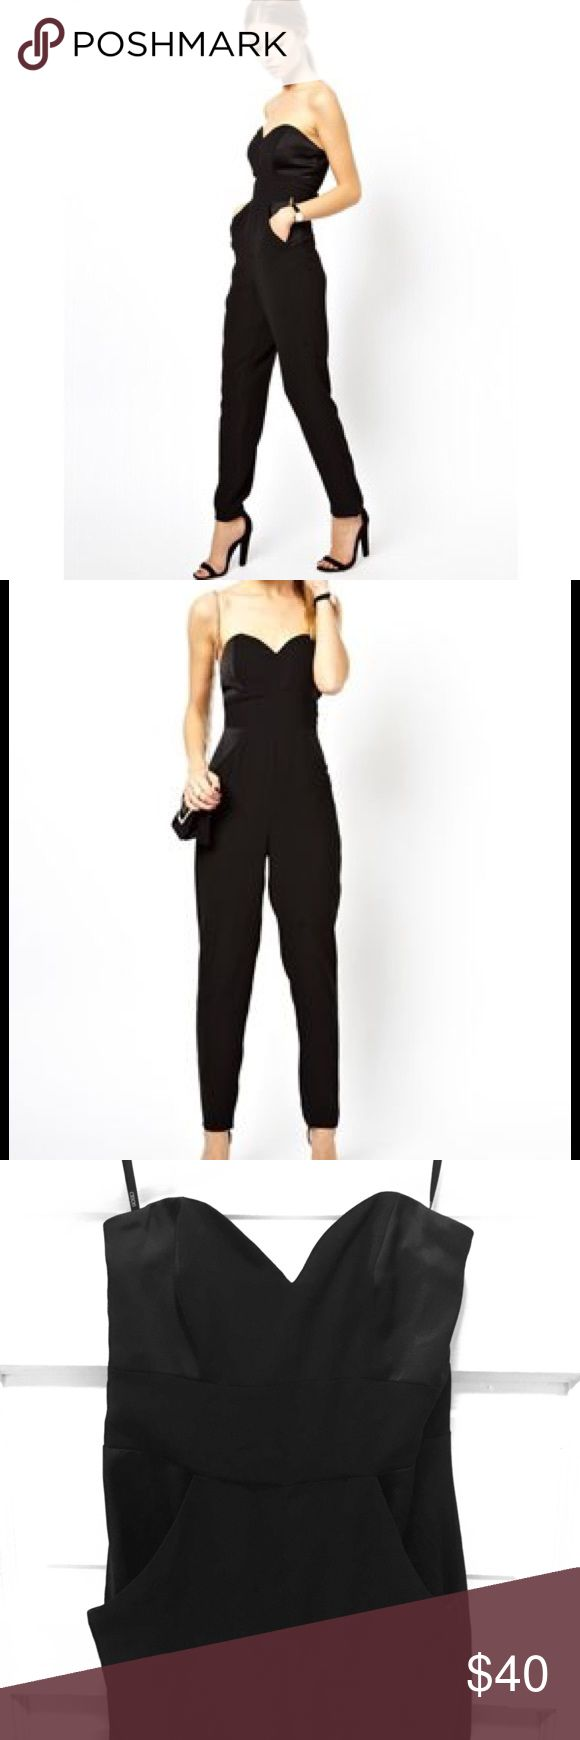 Bandeau jumpsuit Brand new never worn before bandeau jumpsuit with deep plunge neck. ASOS Pants Jumpsuits & Rompers